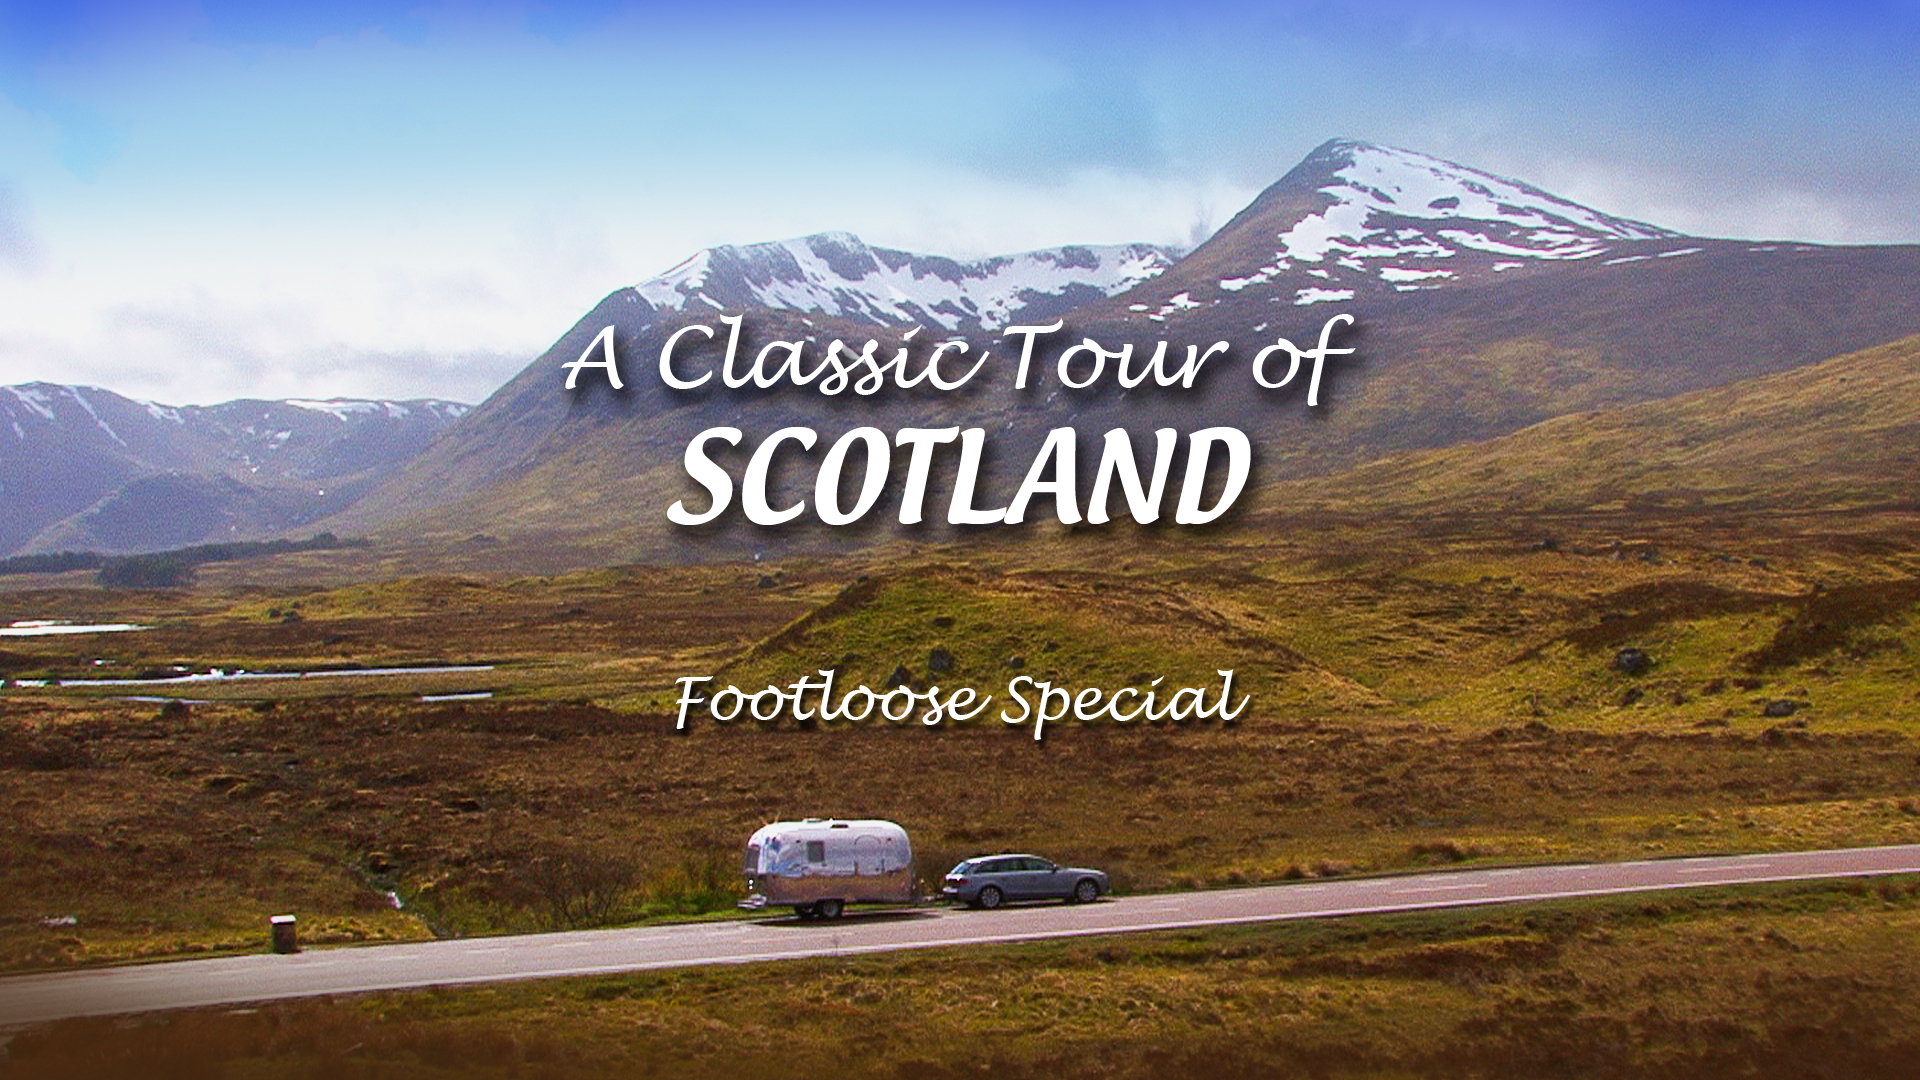 A Classic Tour of Scotland - Footloose Special